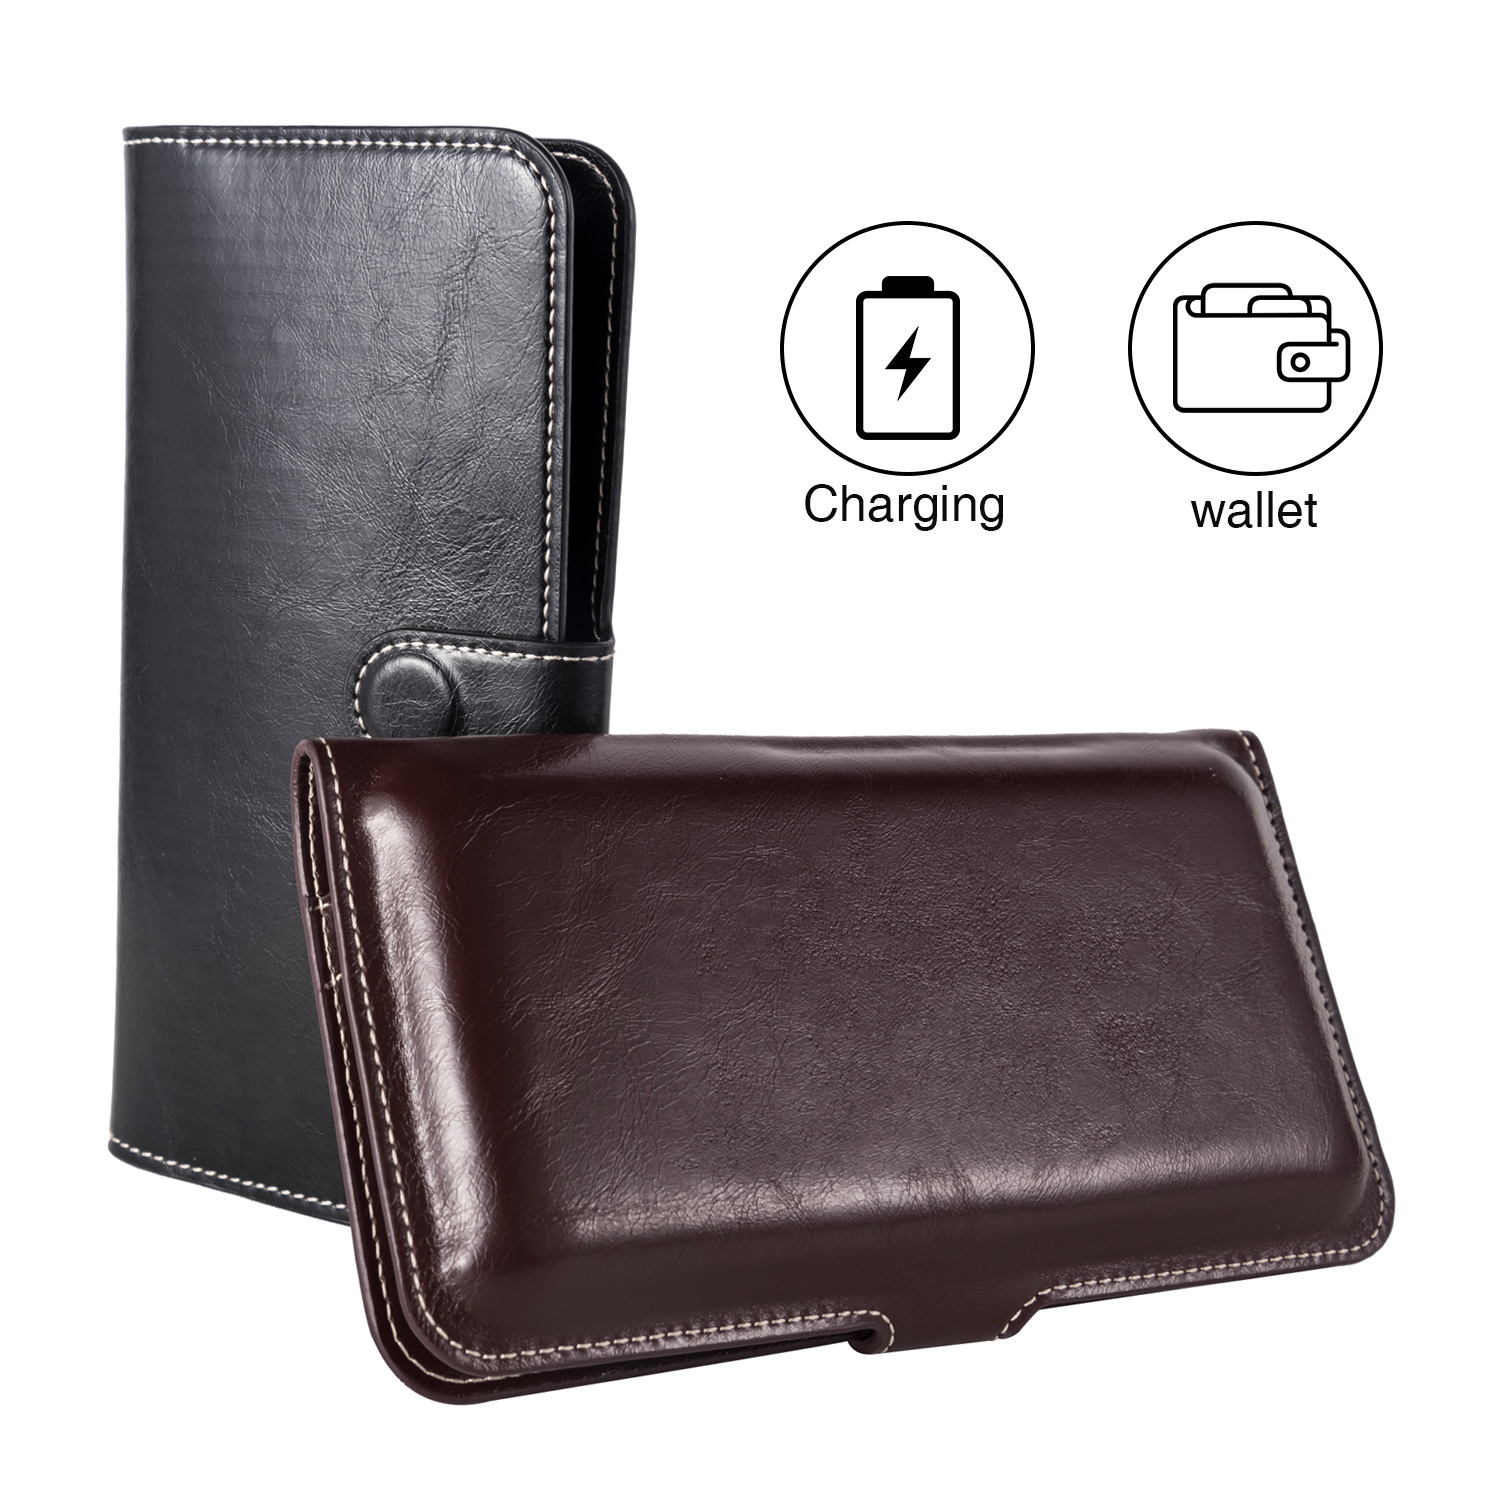 New products Real cowhide rohs wireless power bank wallet purse 6000mah universal power bank - idealPower | idealPower.net